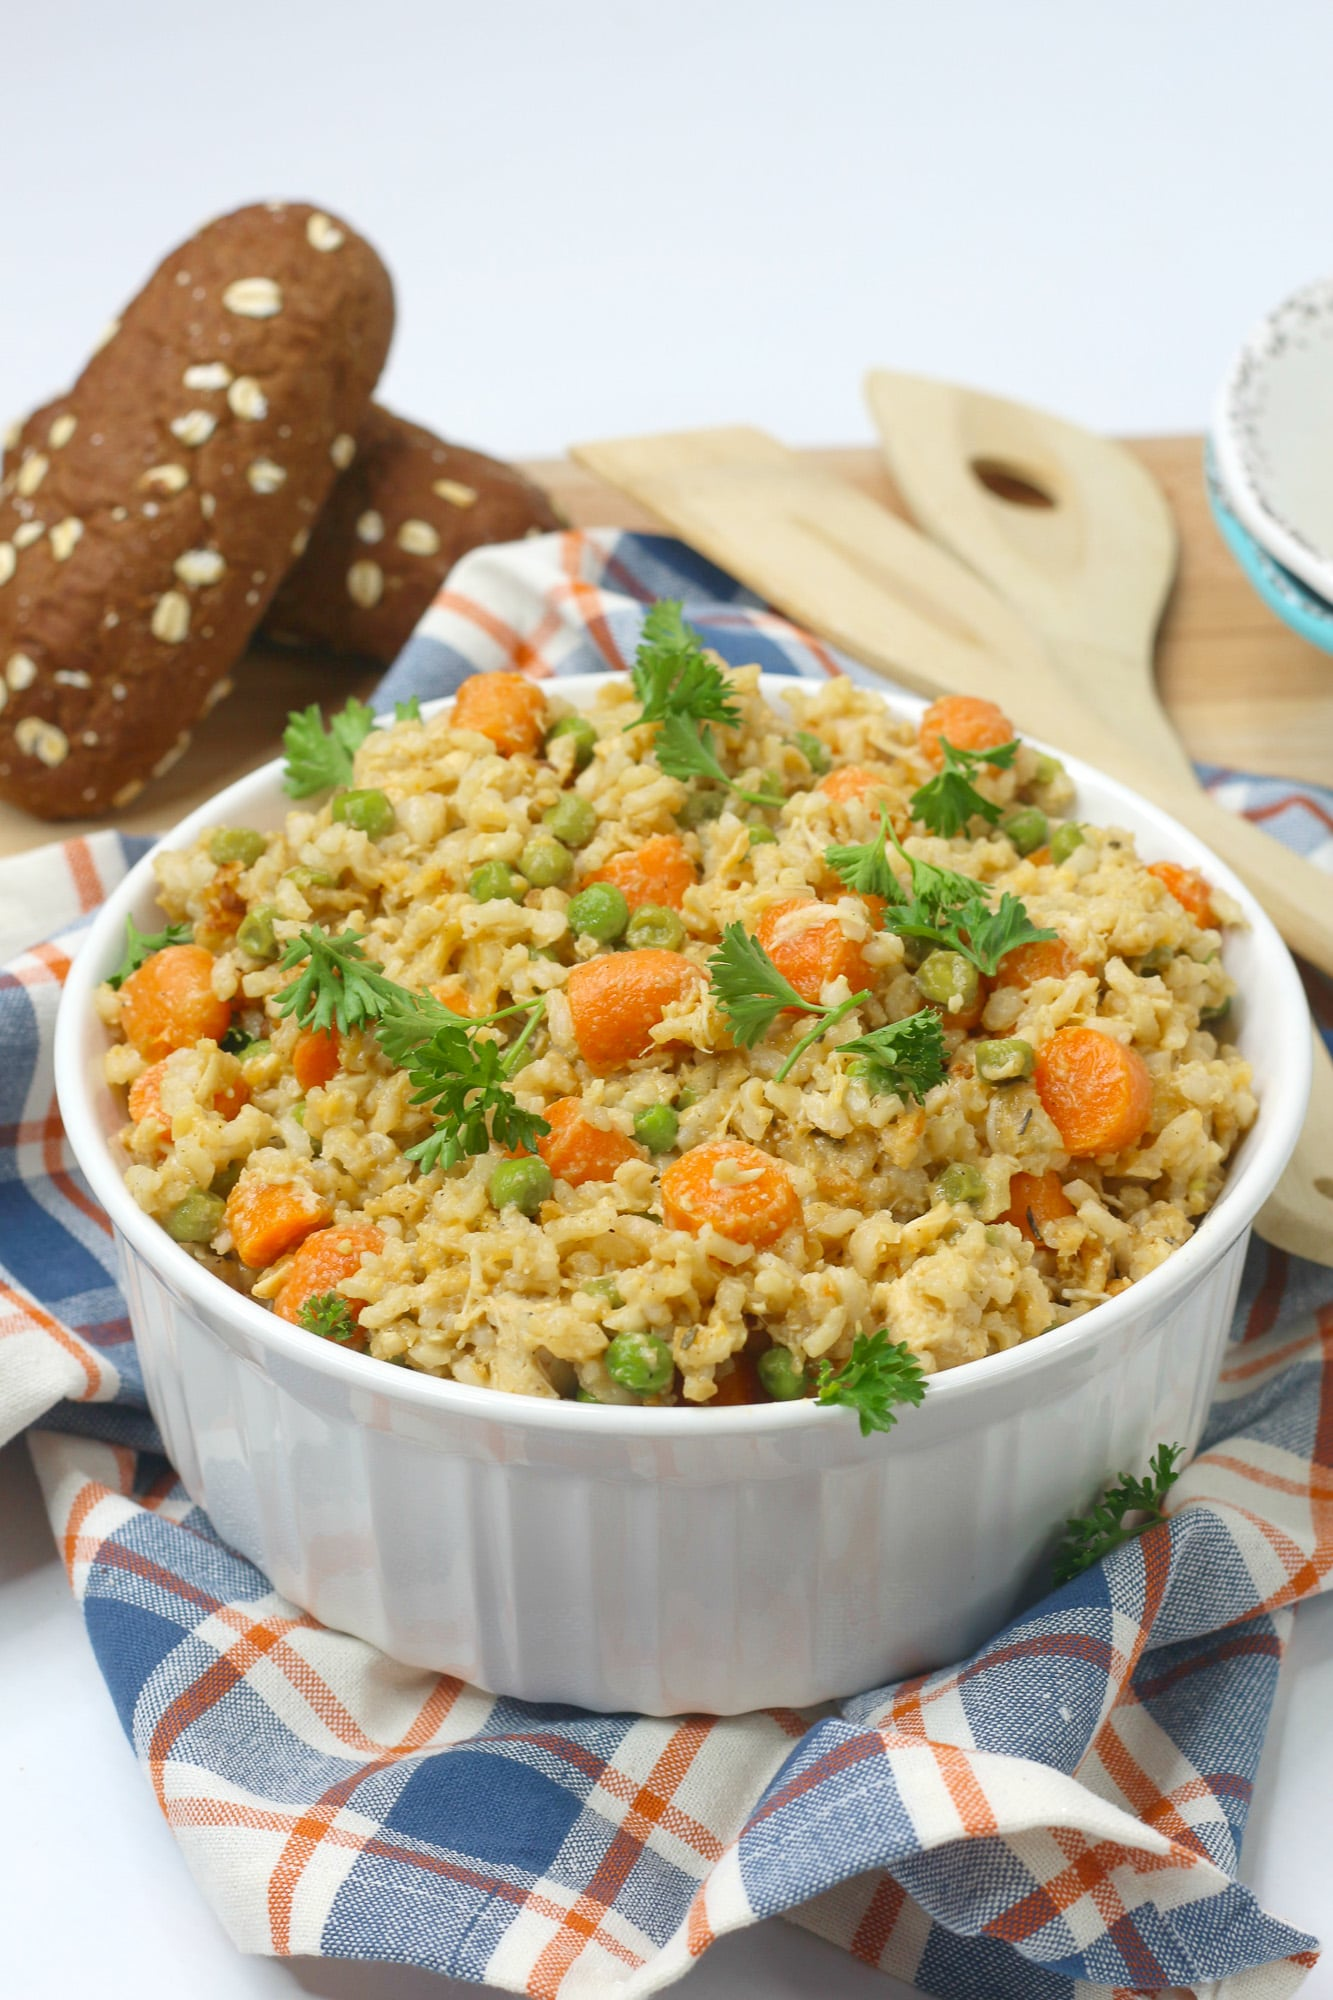 chicken and rice with vegetables in white bowl